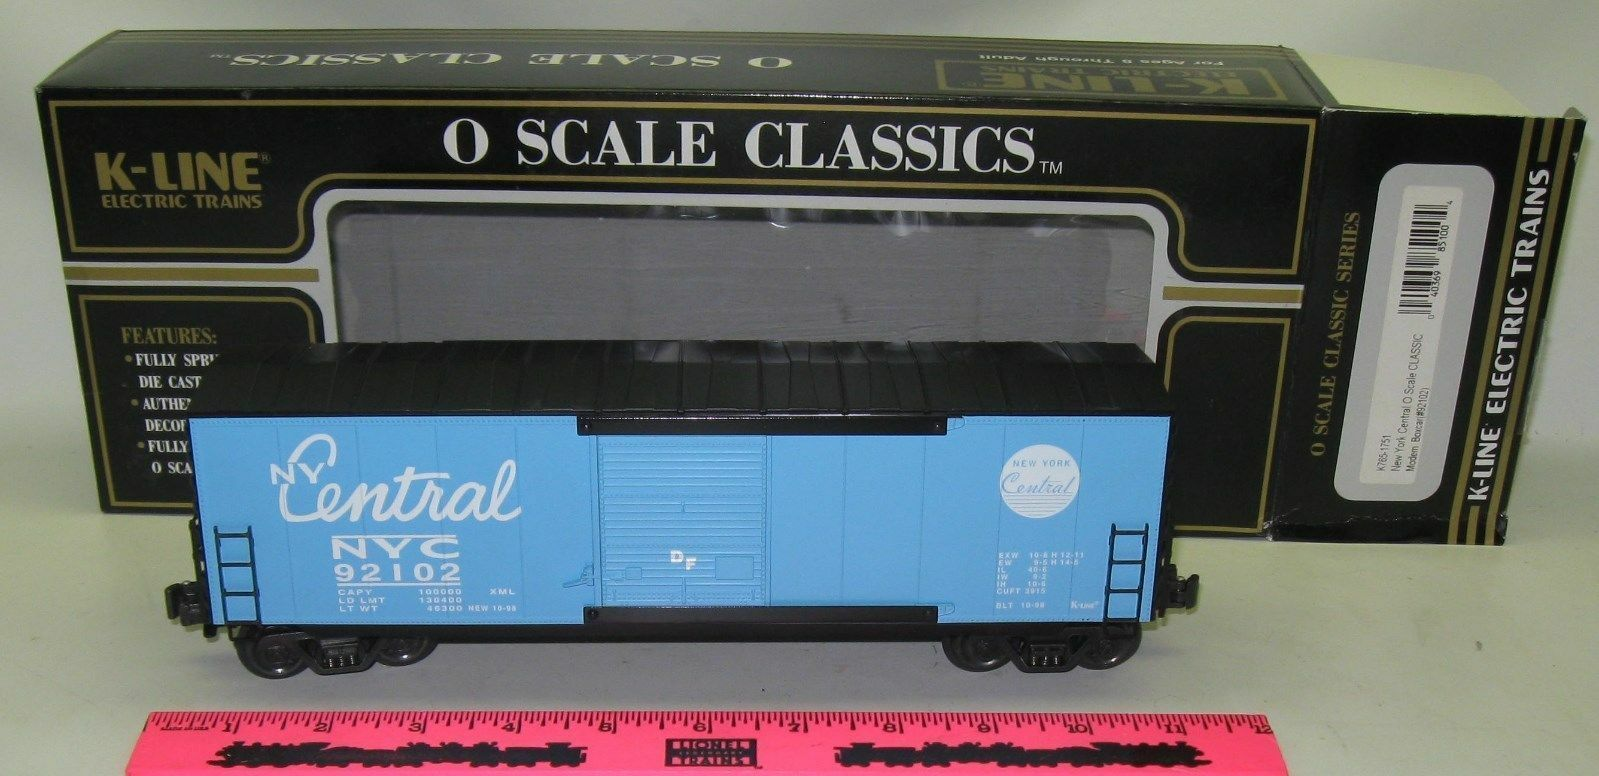 New K-Line K765-1751 New York Central O scale classic modern Boxcar ()